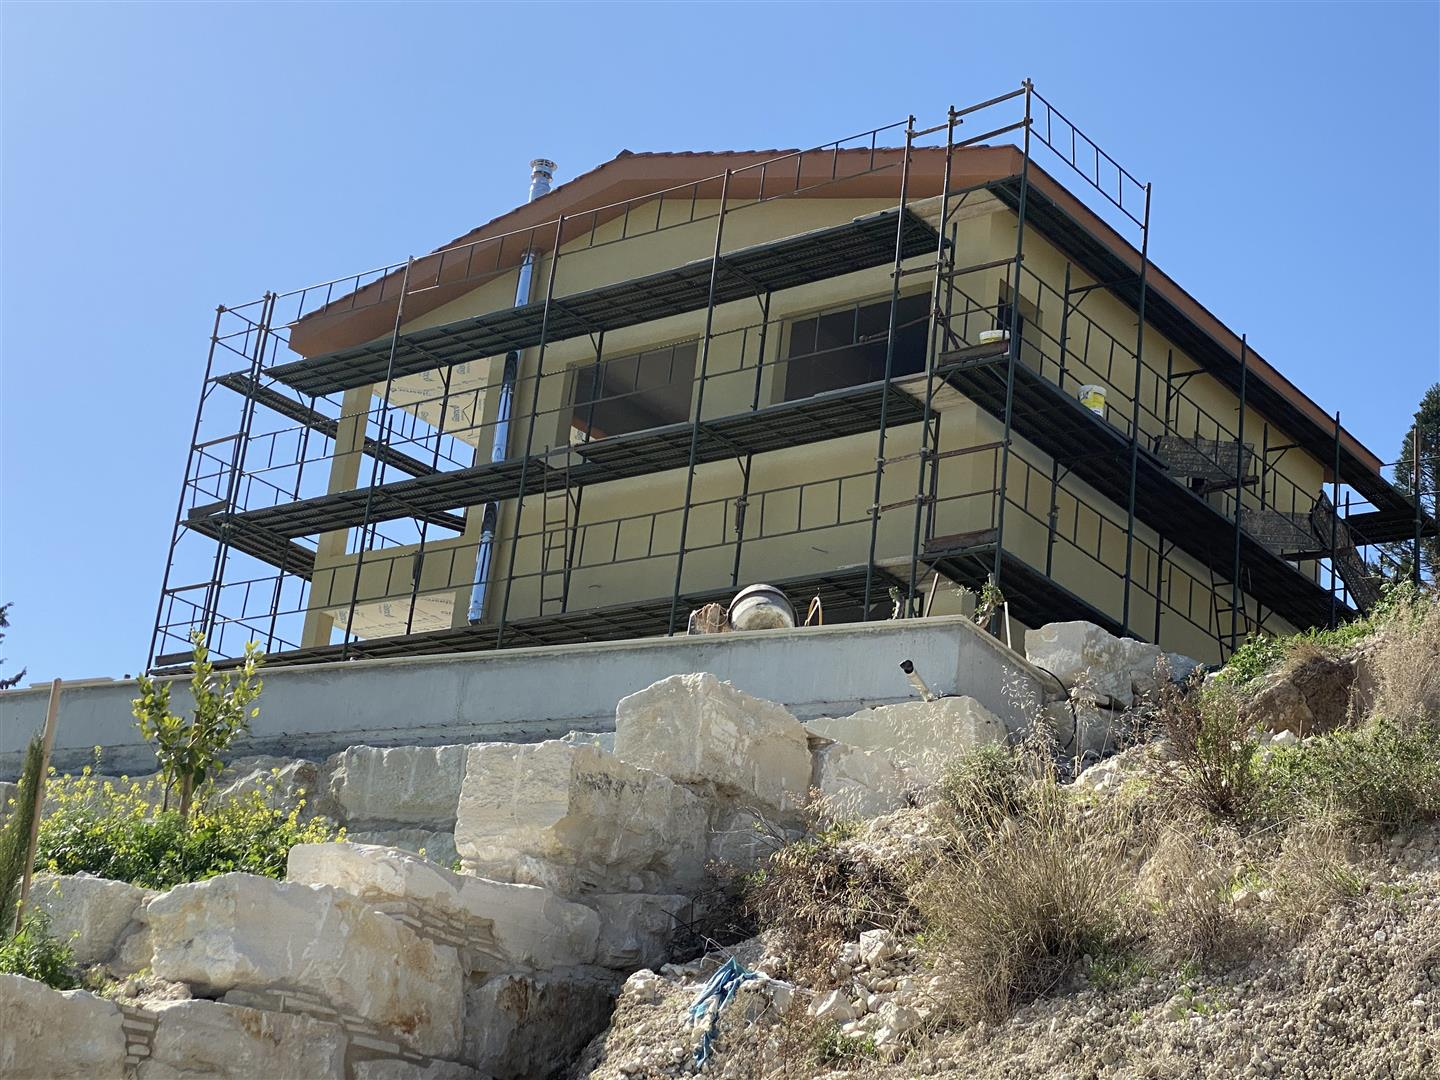 Picture of Three bedroom house under construction